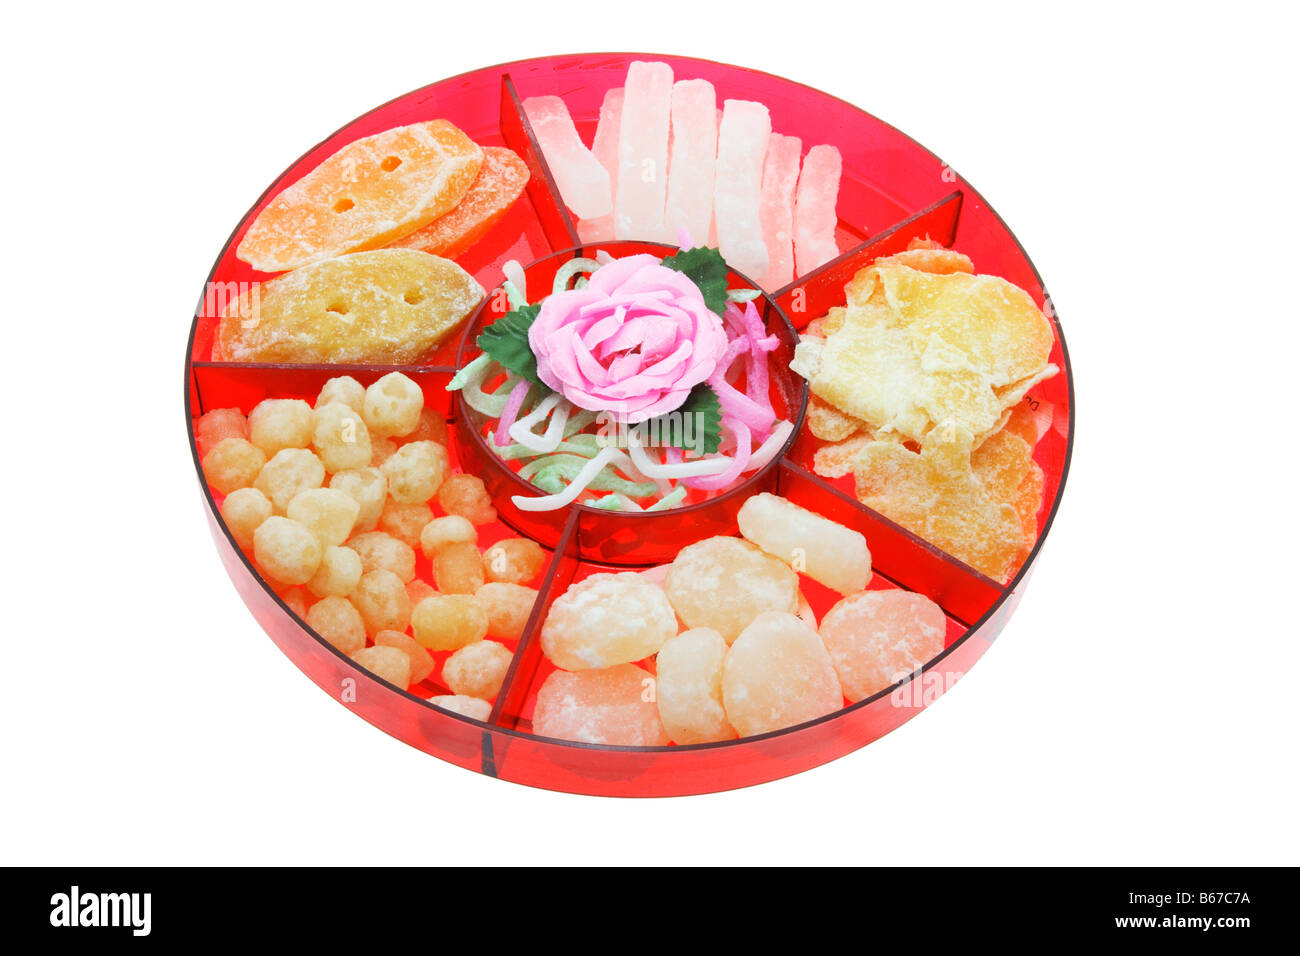 chinese new year food tray stock image - Chinese New Year Food